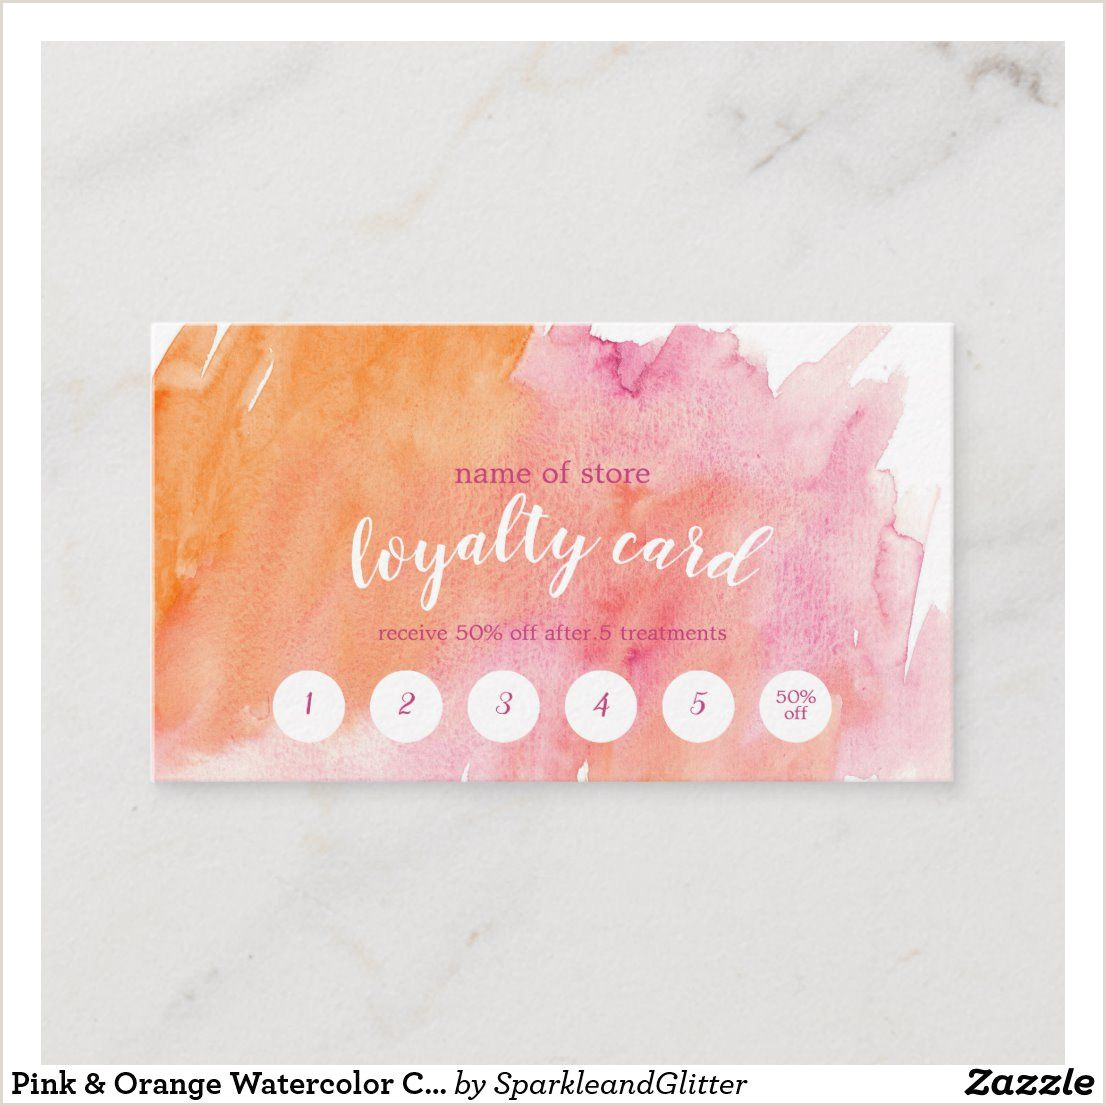 Unique Girly Business Cards Pink & Orange Watercolor Customer Loyalty Card